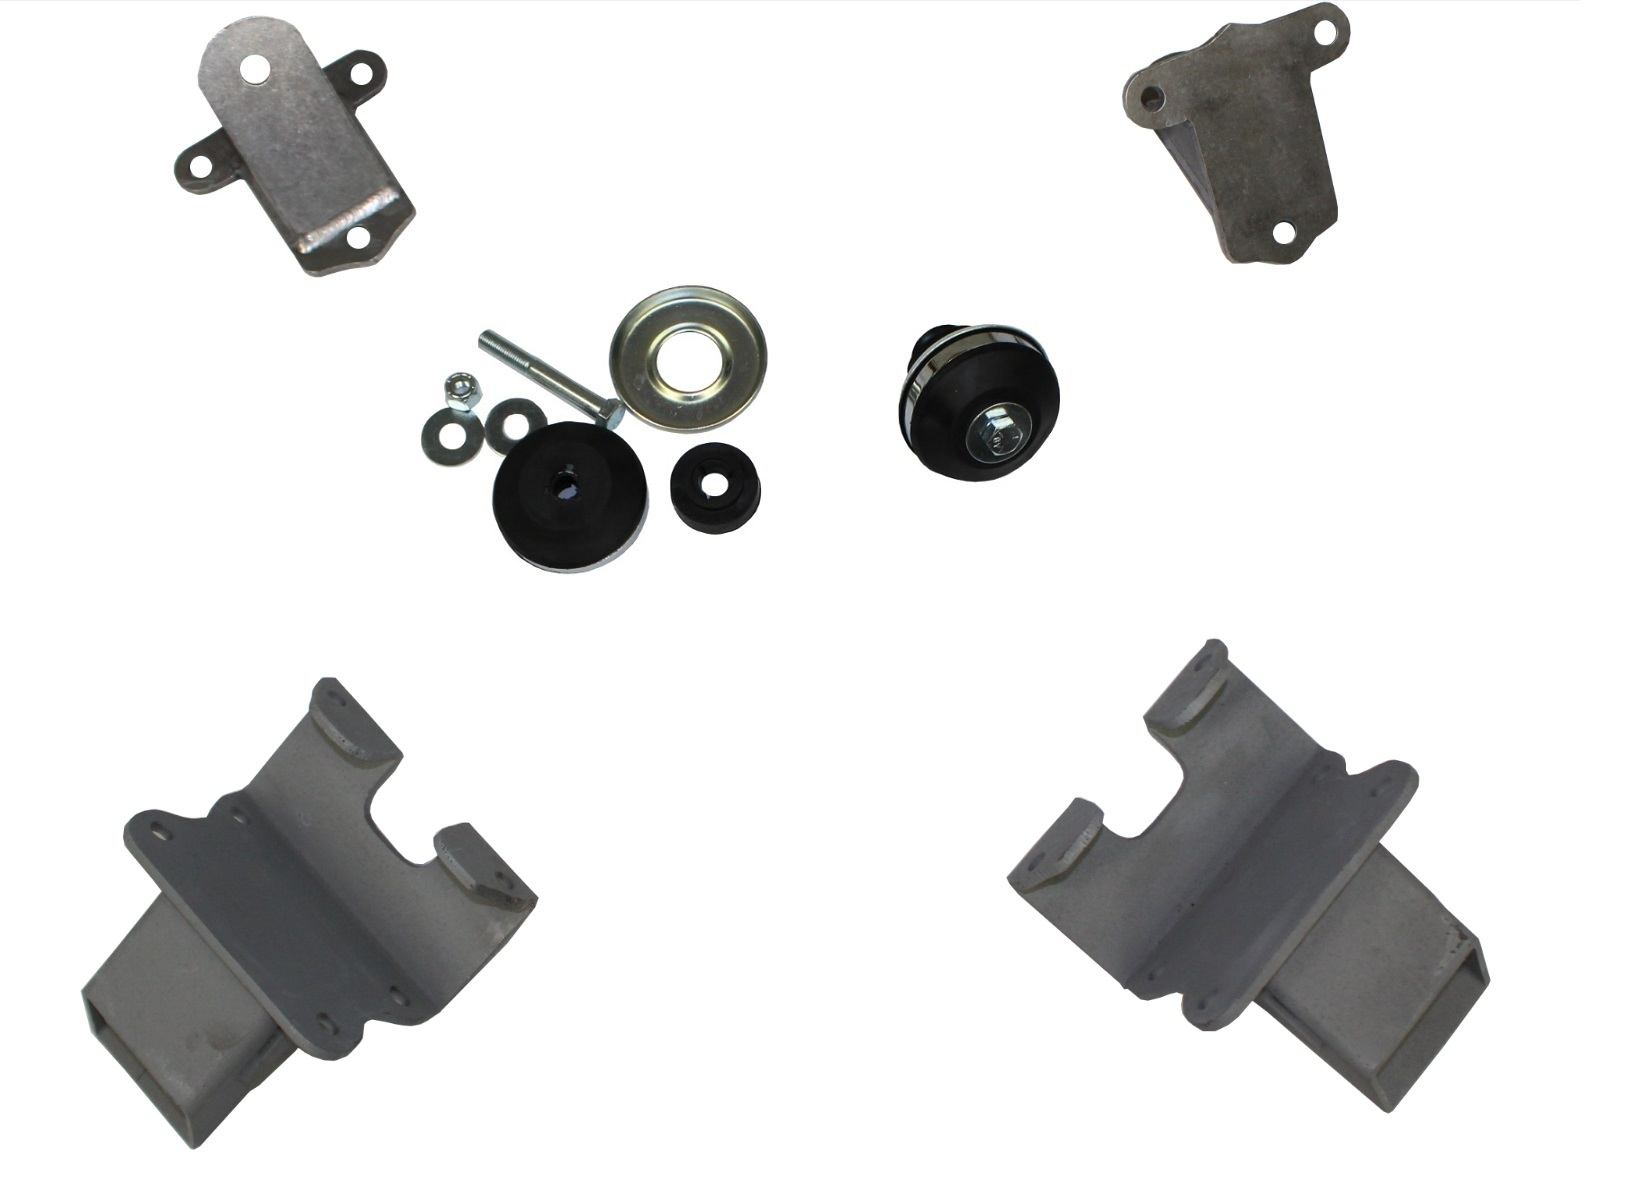 1936 Chevy Standard Small Block Chevy Engine Mounting Kit For IFS